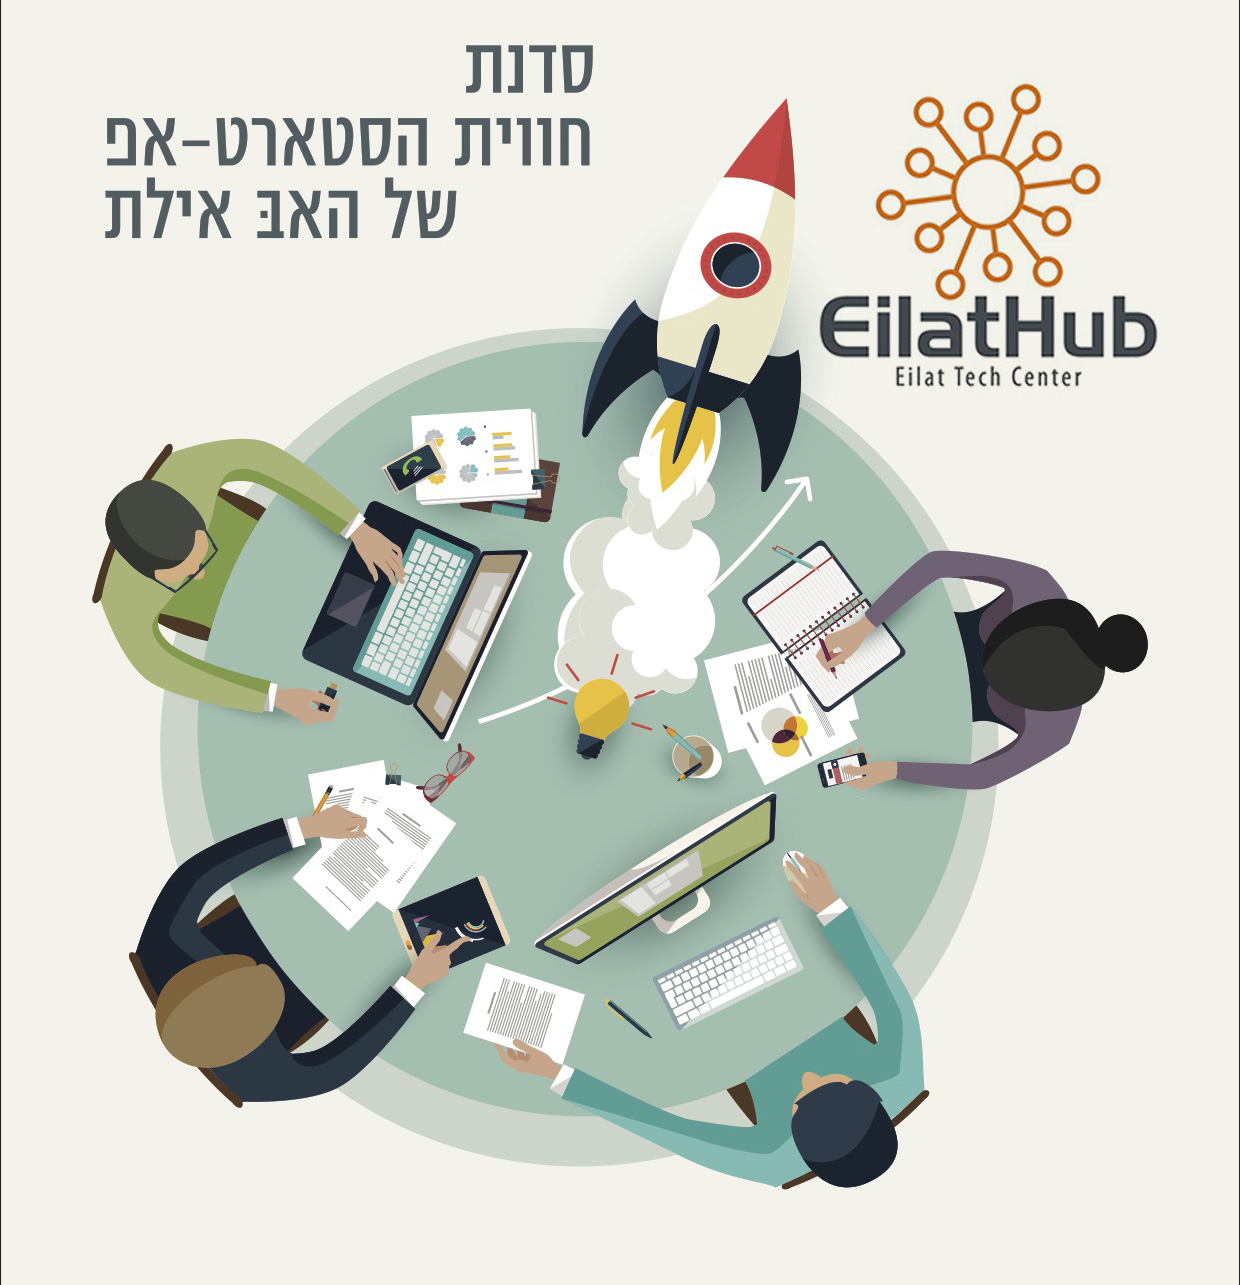 The Eilat Hub Startup Experience